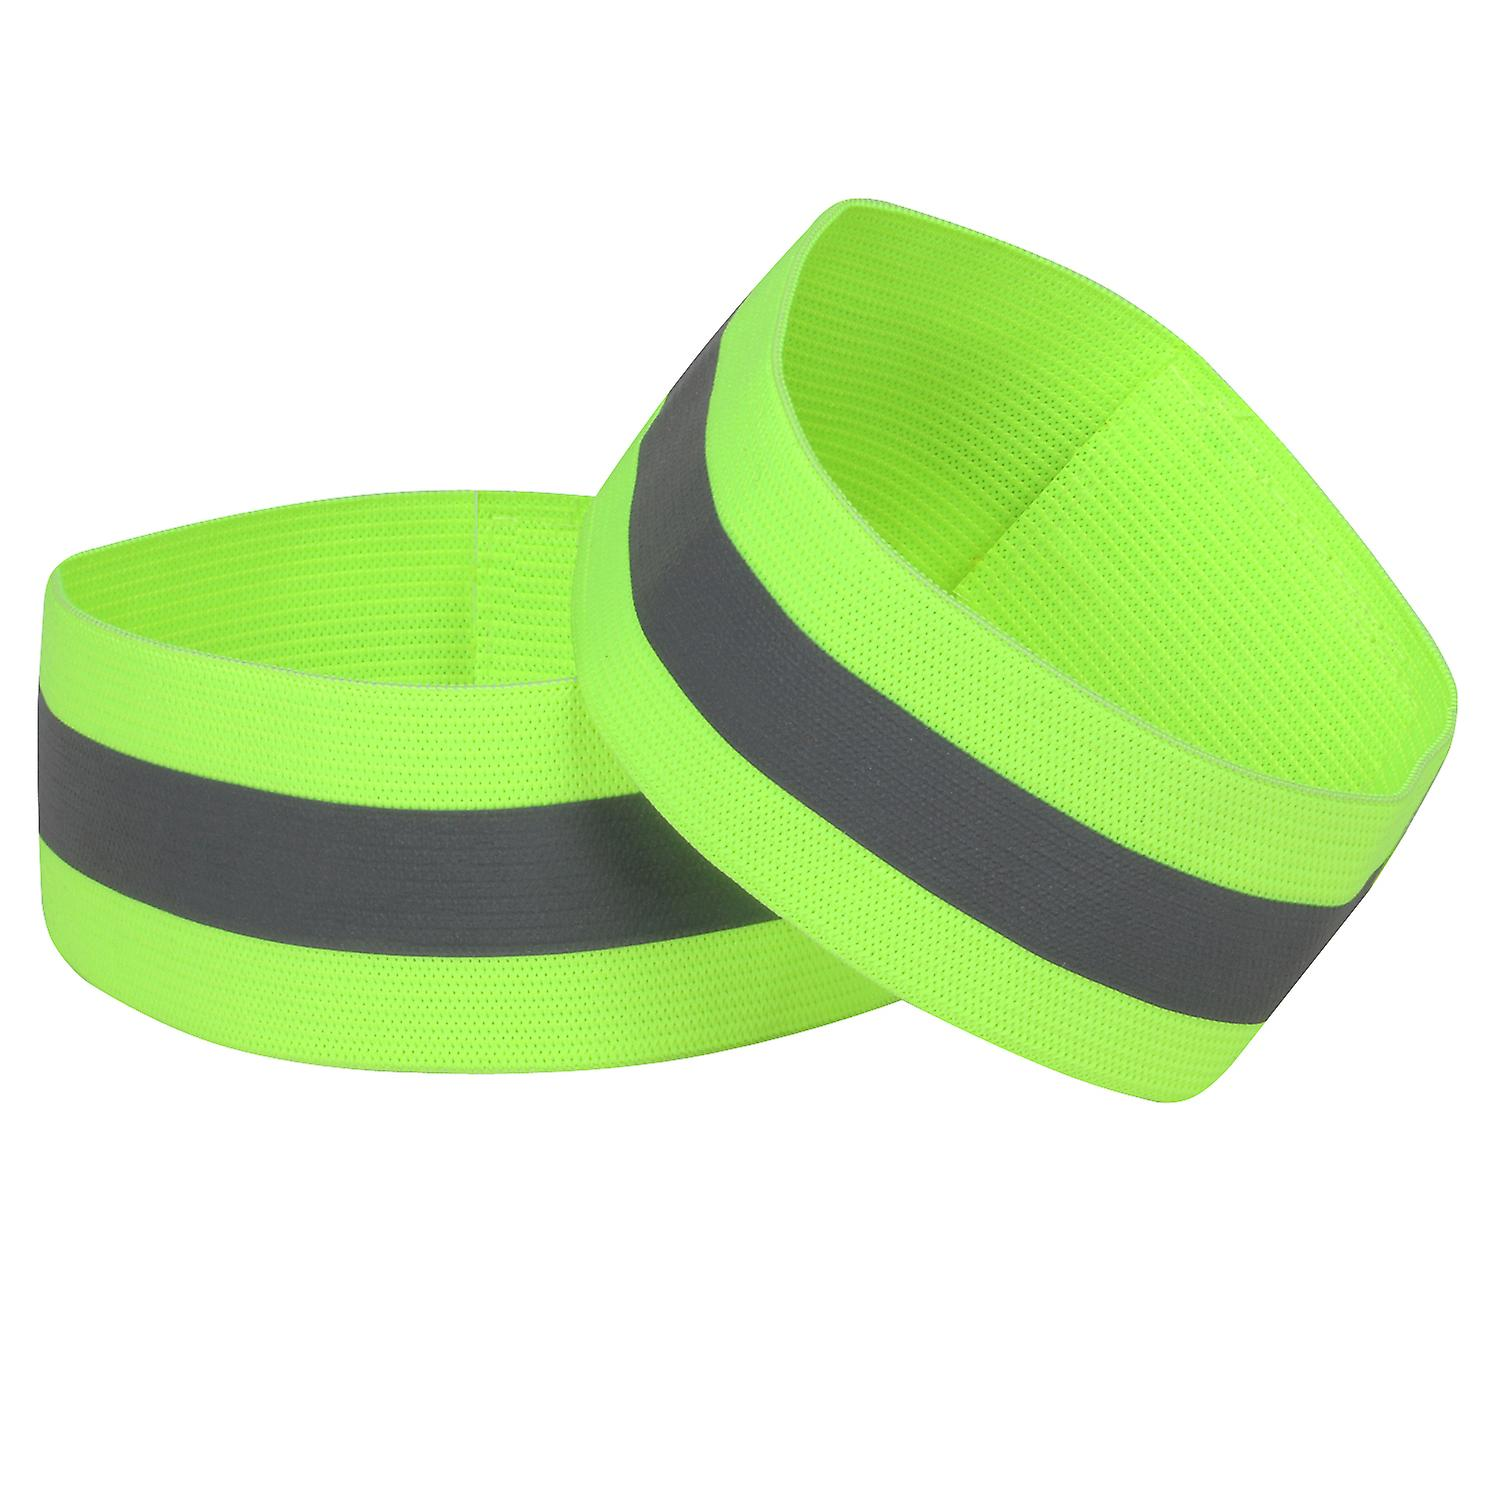 TRIXES Safety Armbands x 2 for Roadside Walking and Adverse Weather - One Size Hook and Loop High Visibility